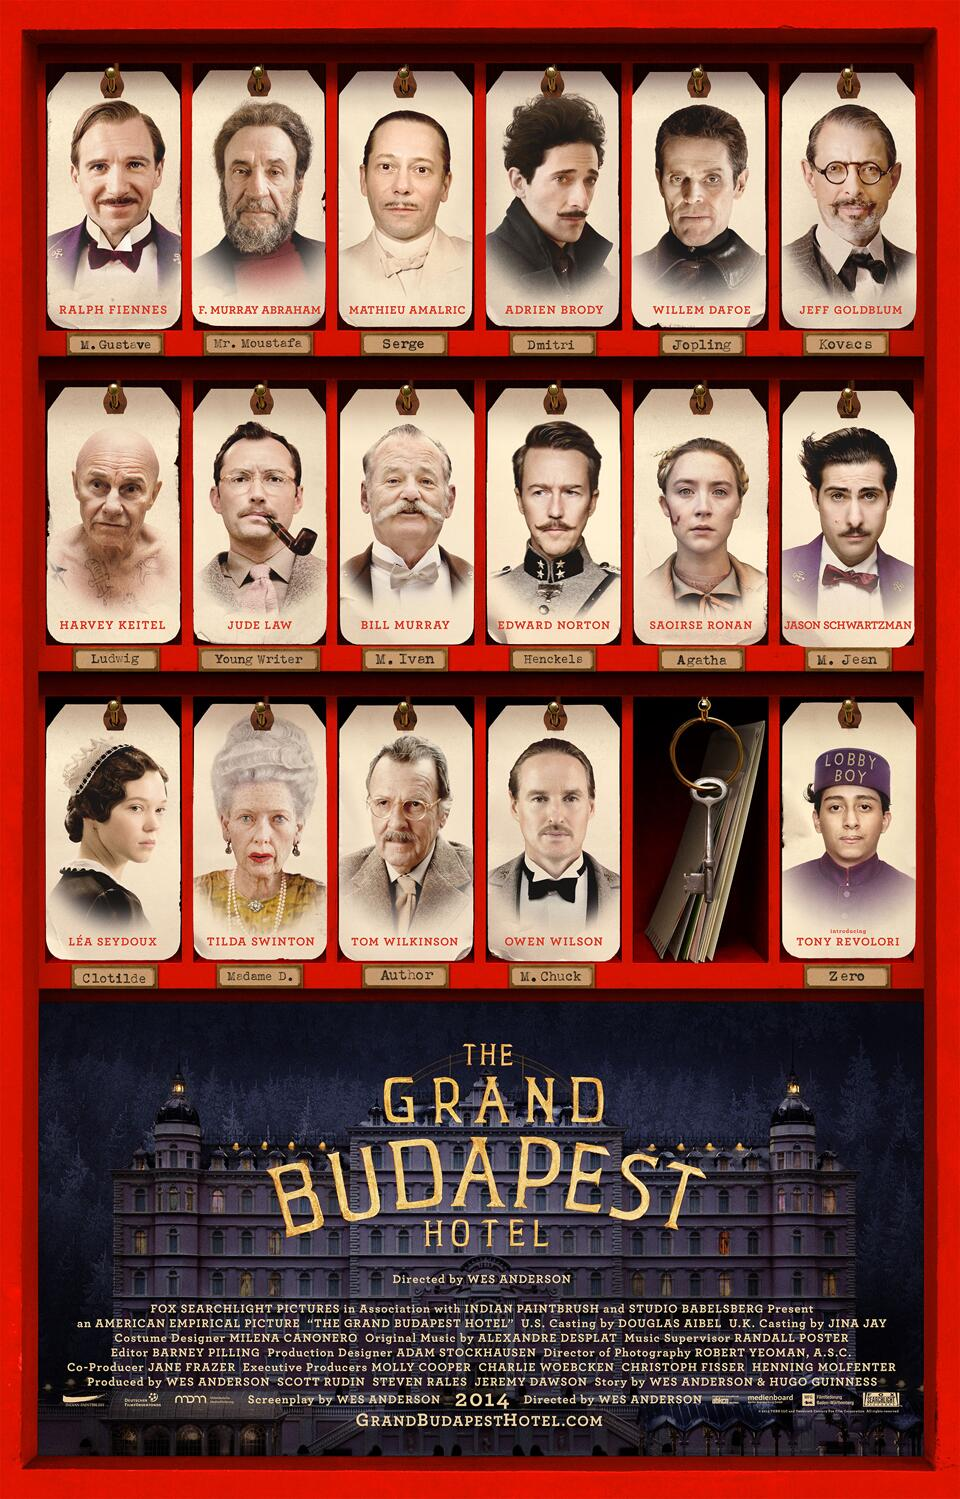 is the grand budapest hotel wes anderson 39 s best film yet